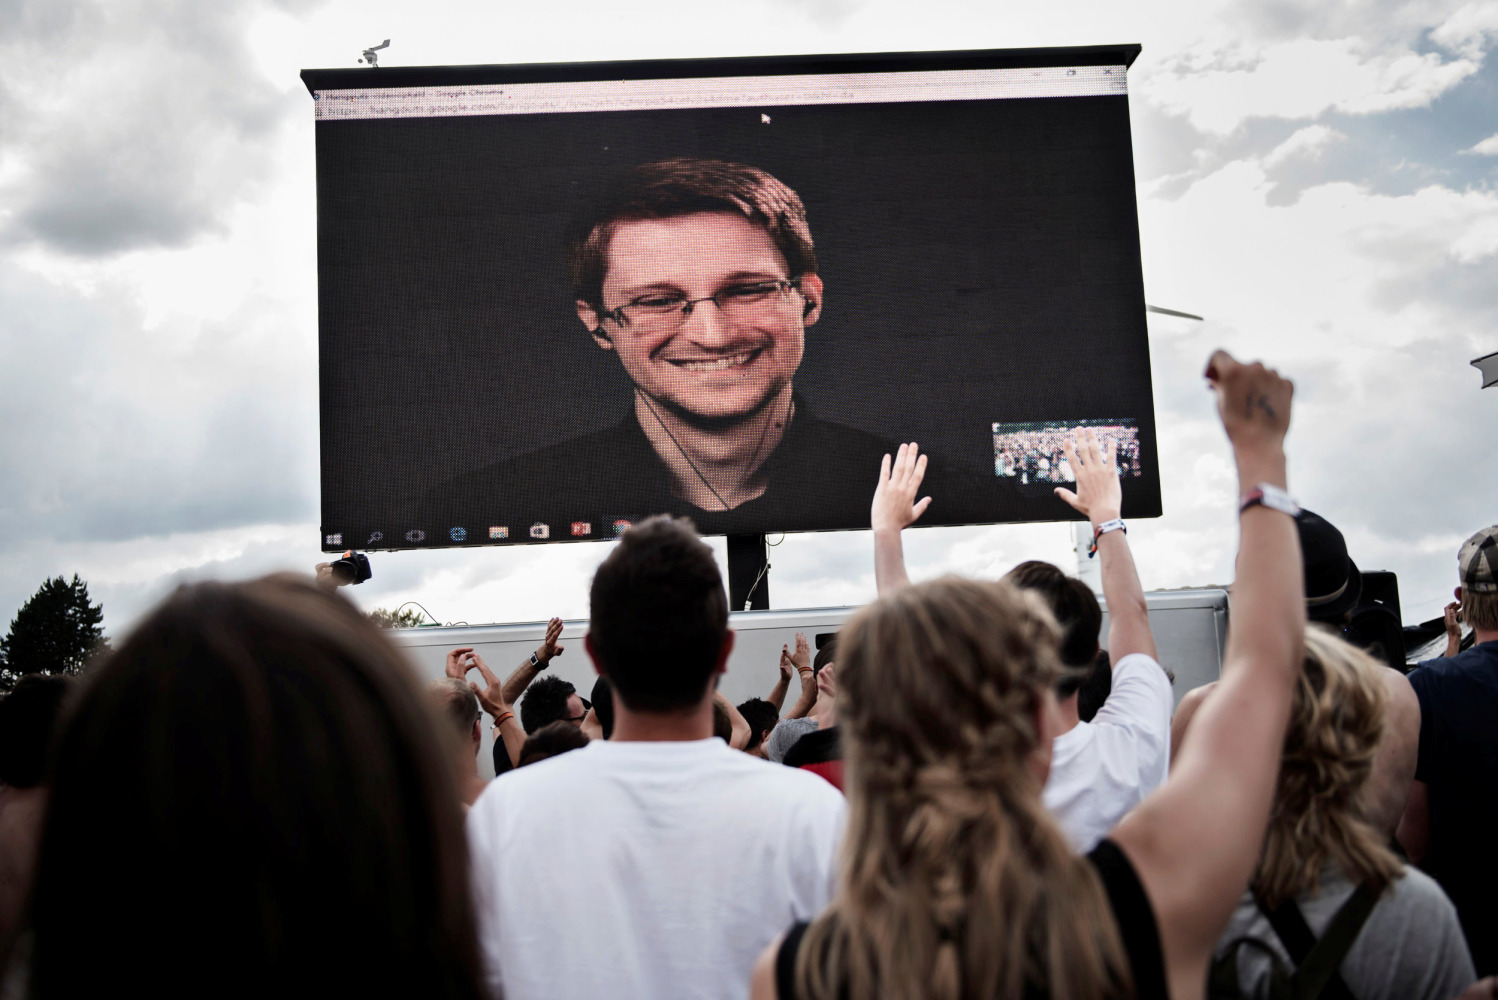 Russia eyes sending Snowden to U.S. as 'gift' to Trump, official says